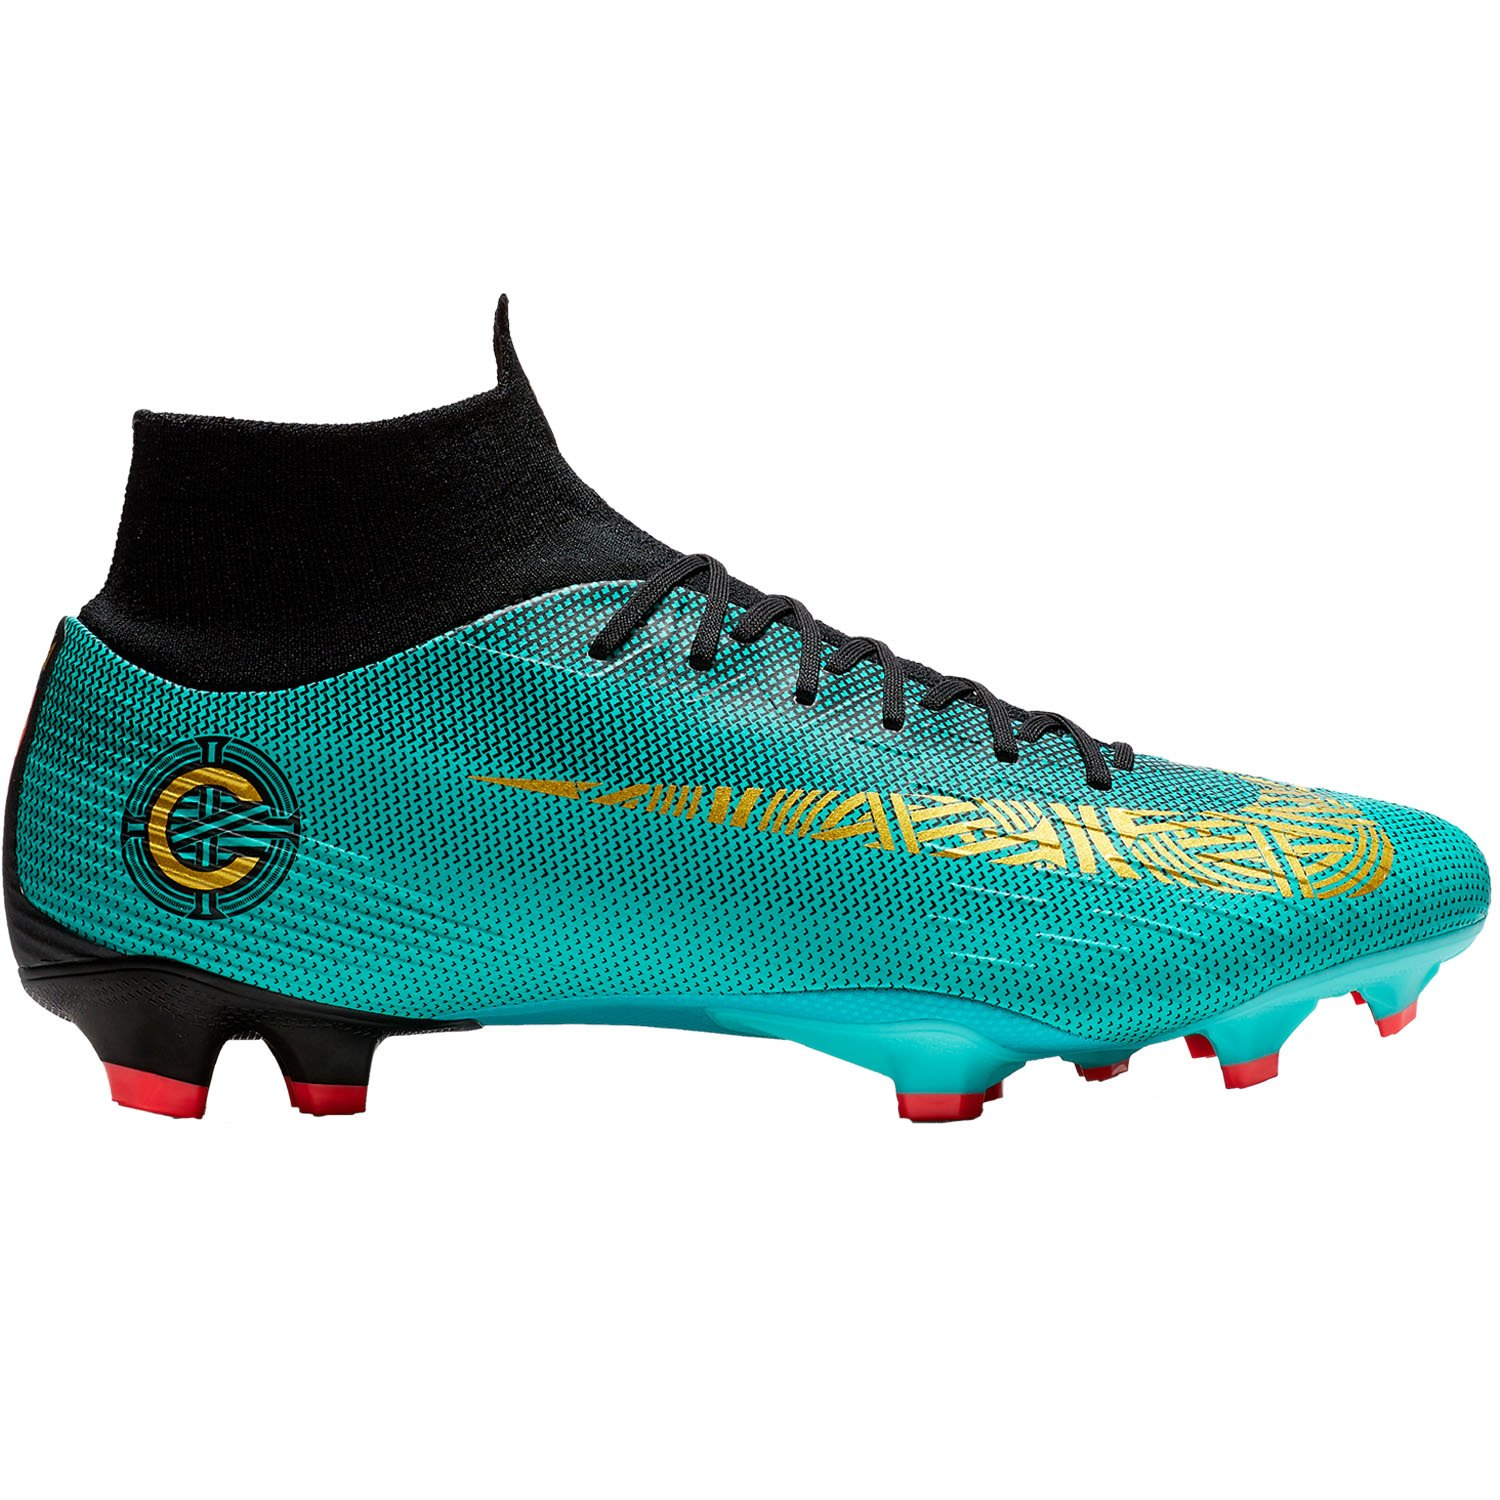 ナイキスーパーフライ6 Pro cr7 Firm Ground Cleat B07BS21PSG 7.5 D(M) US